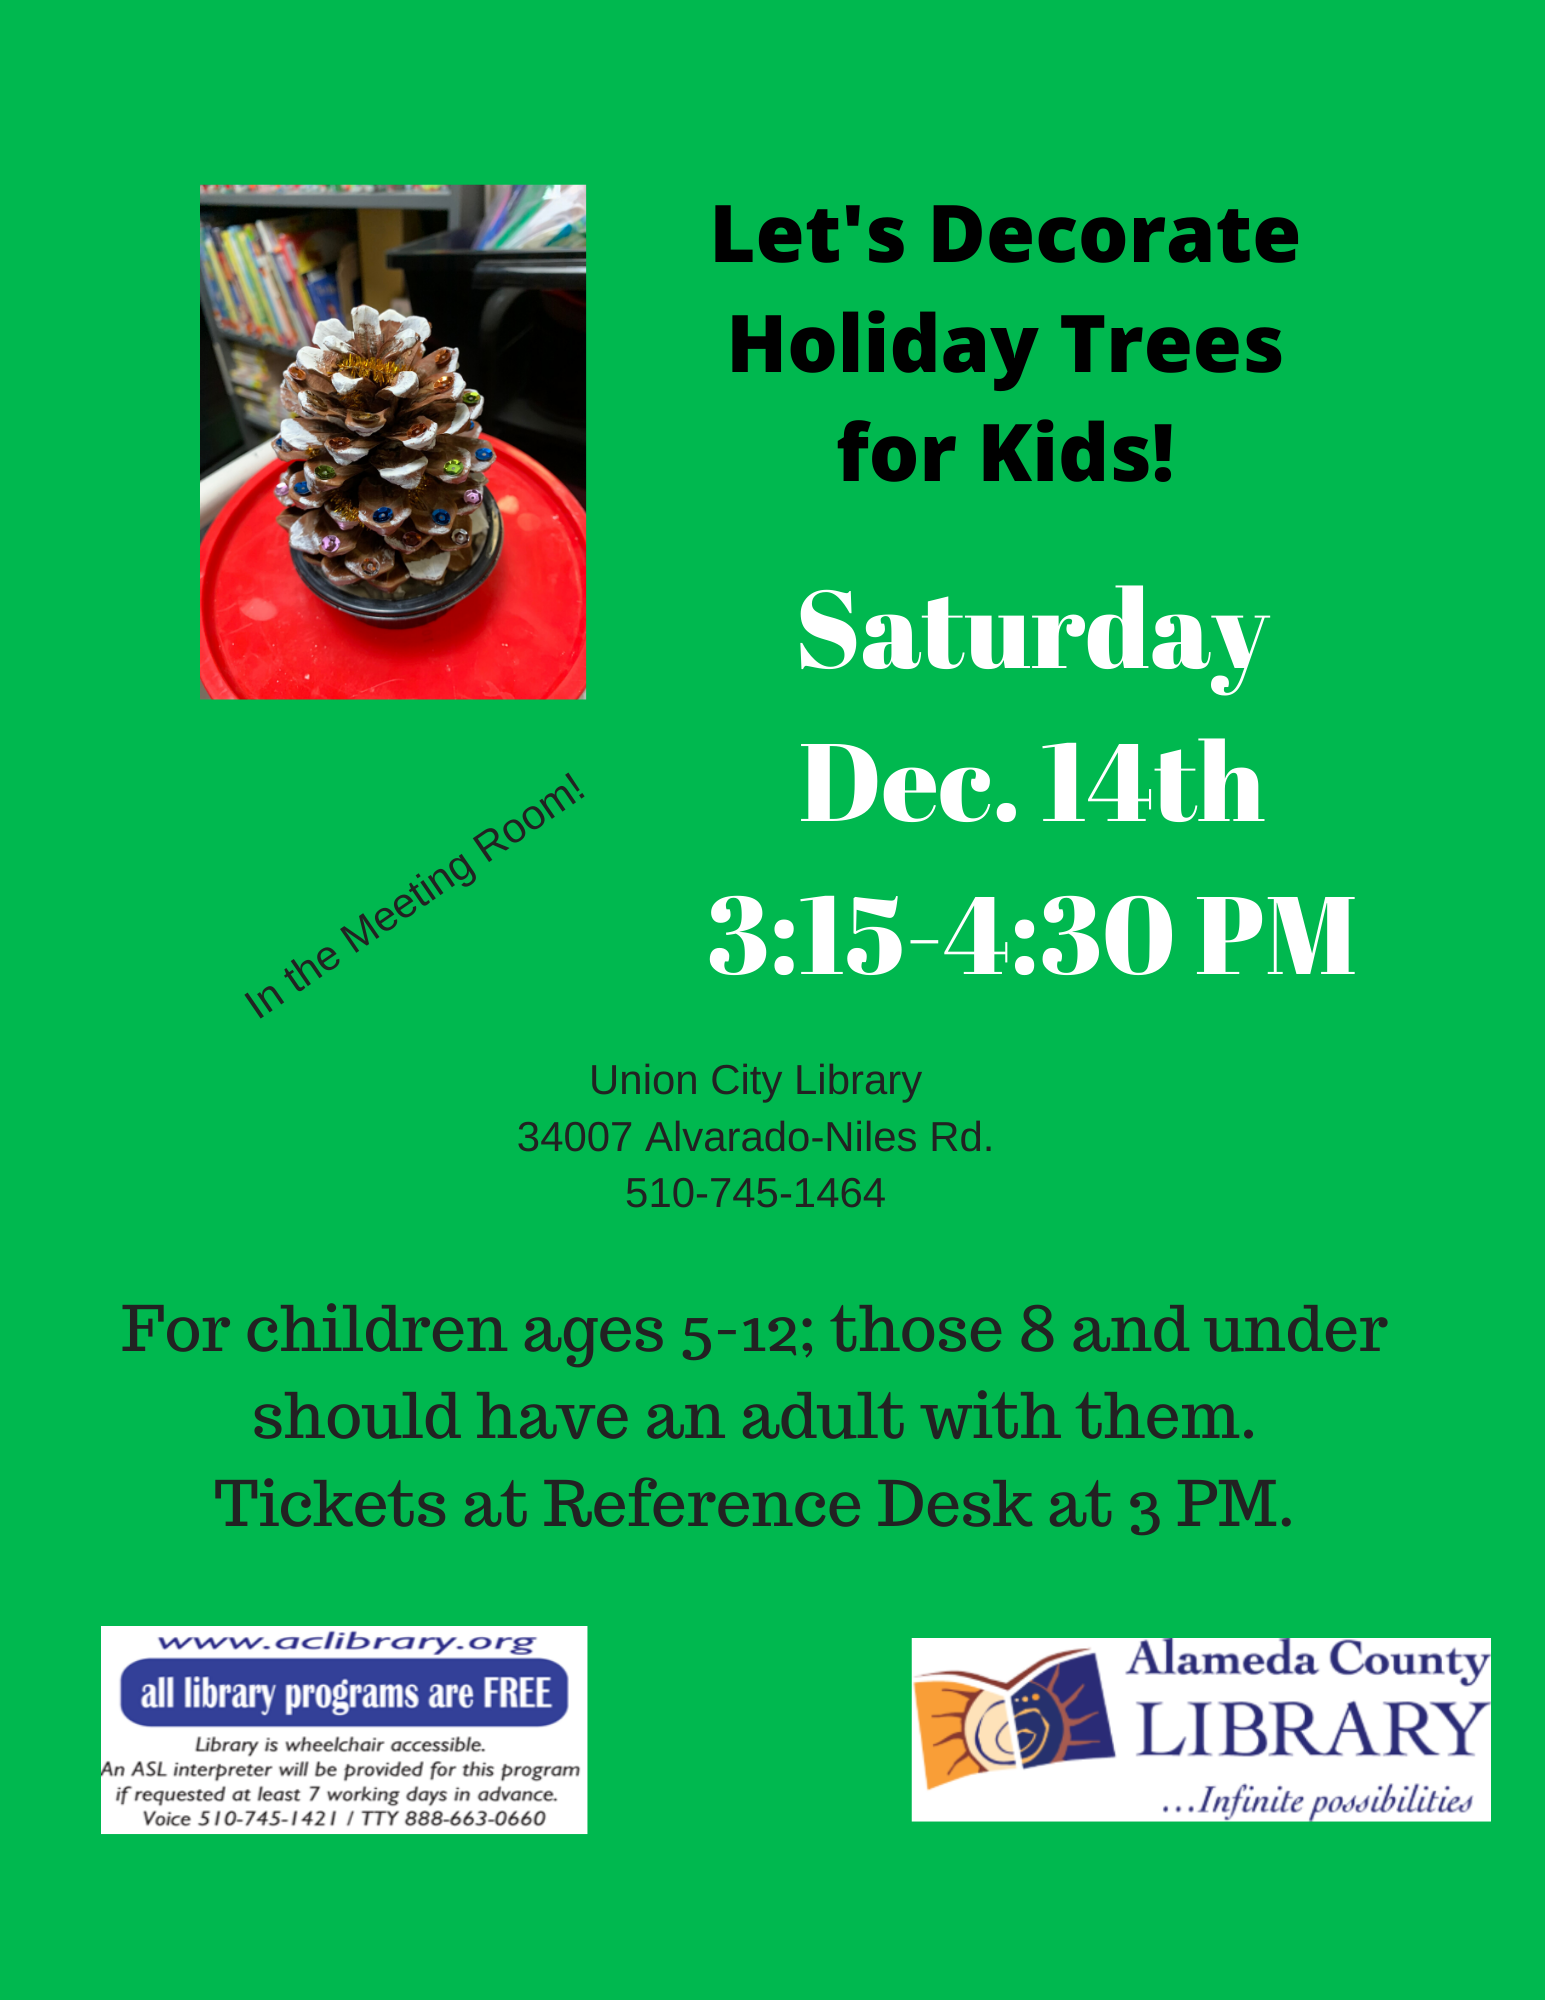 Holiday Trees -- Let's Decorate! -- for Kids